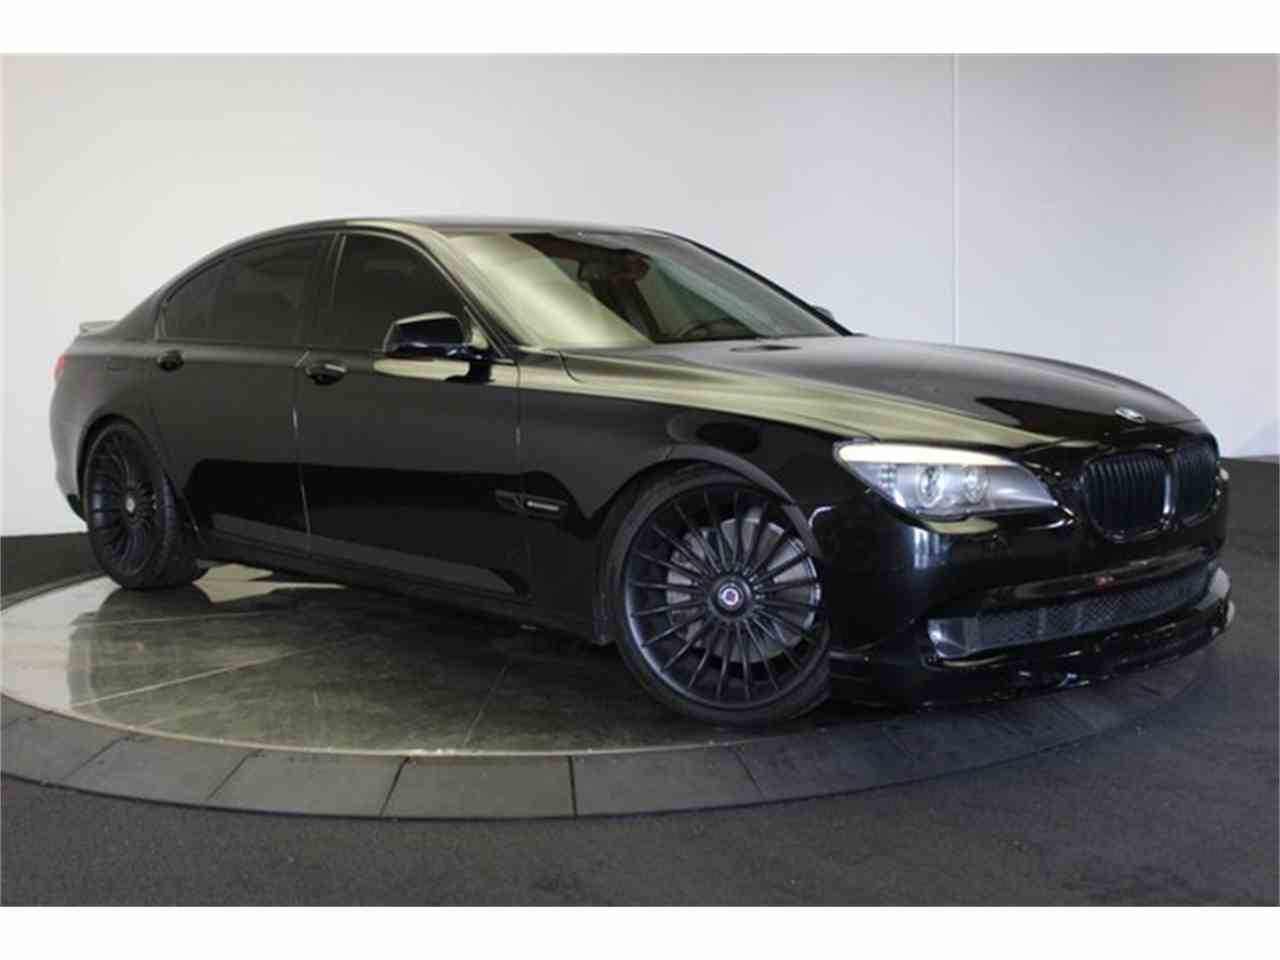 saloon bmw used diesel sale for series black in automatic kildare